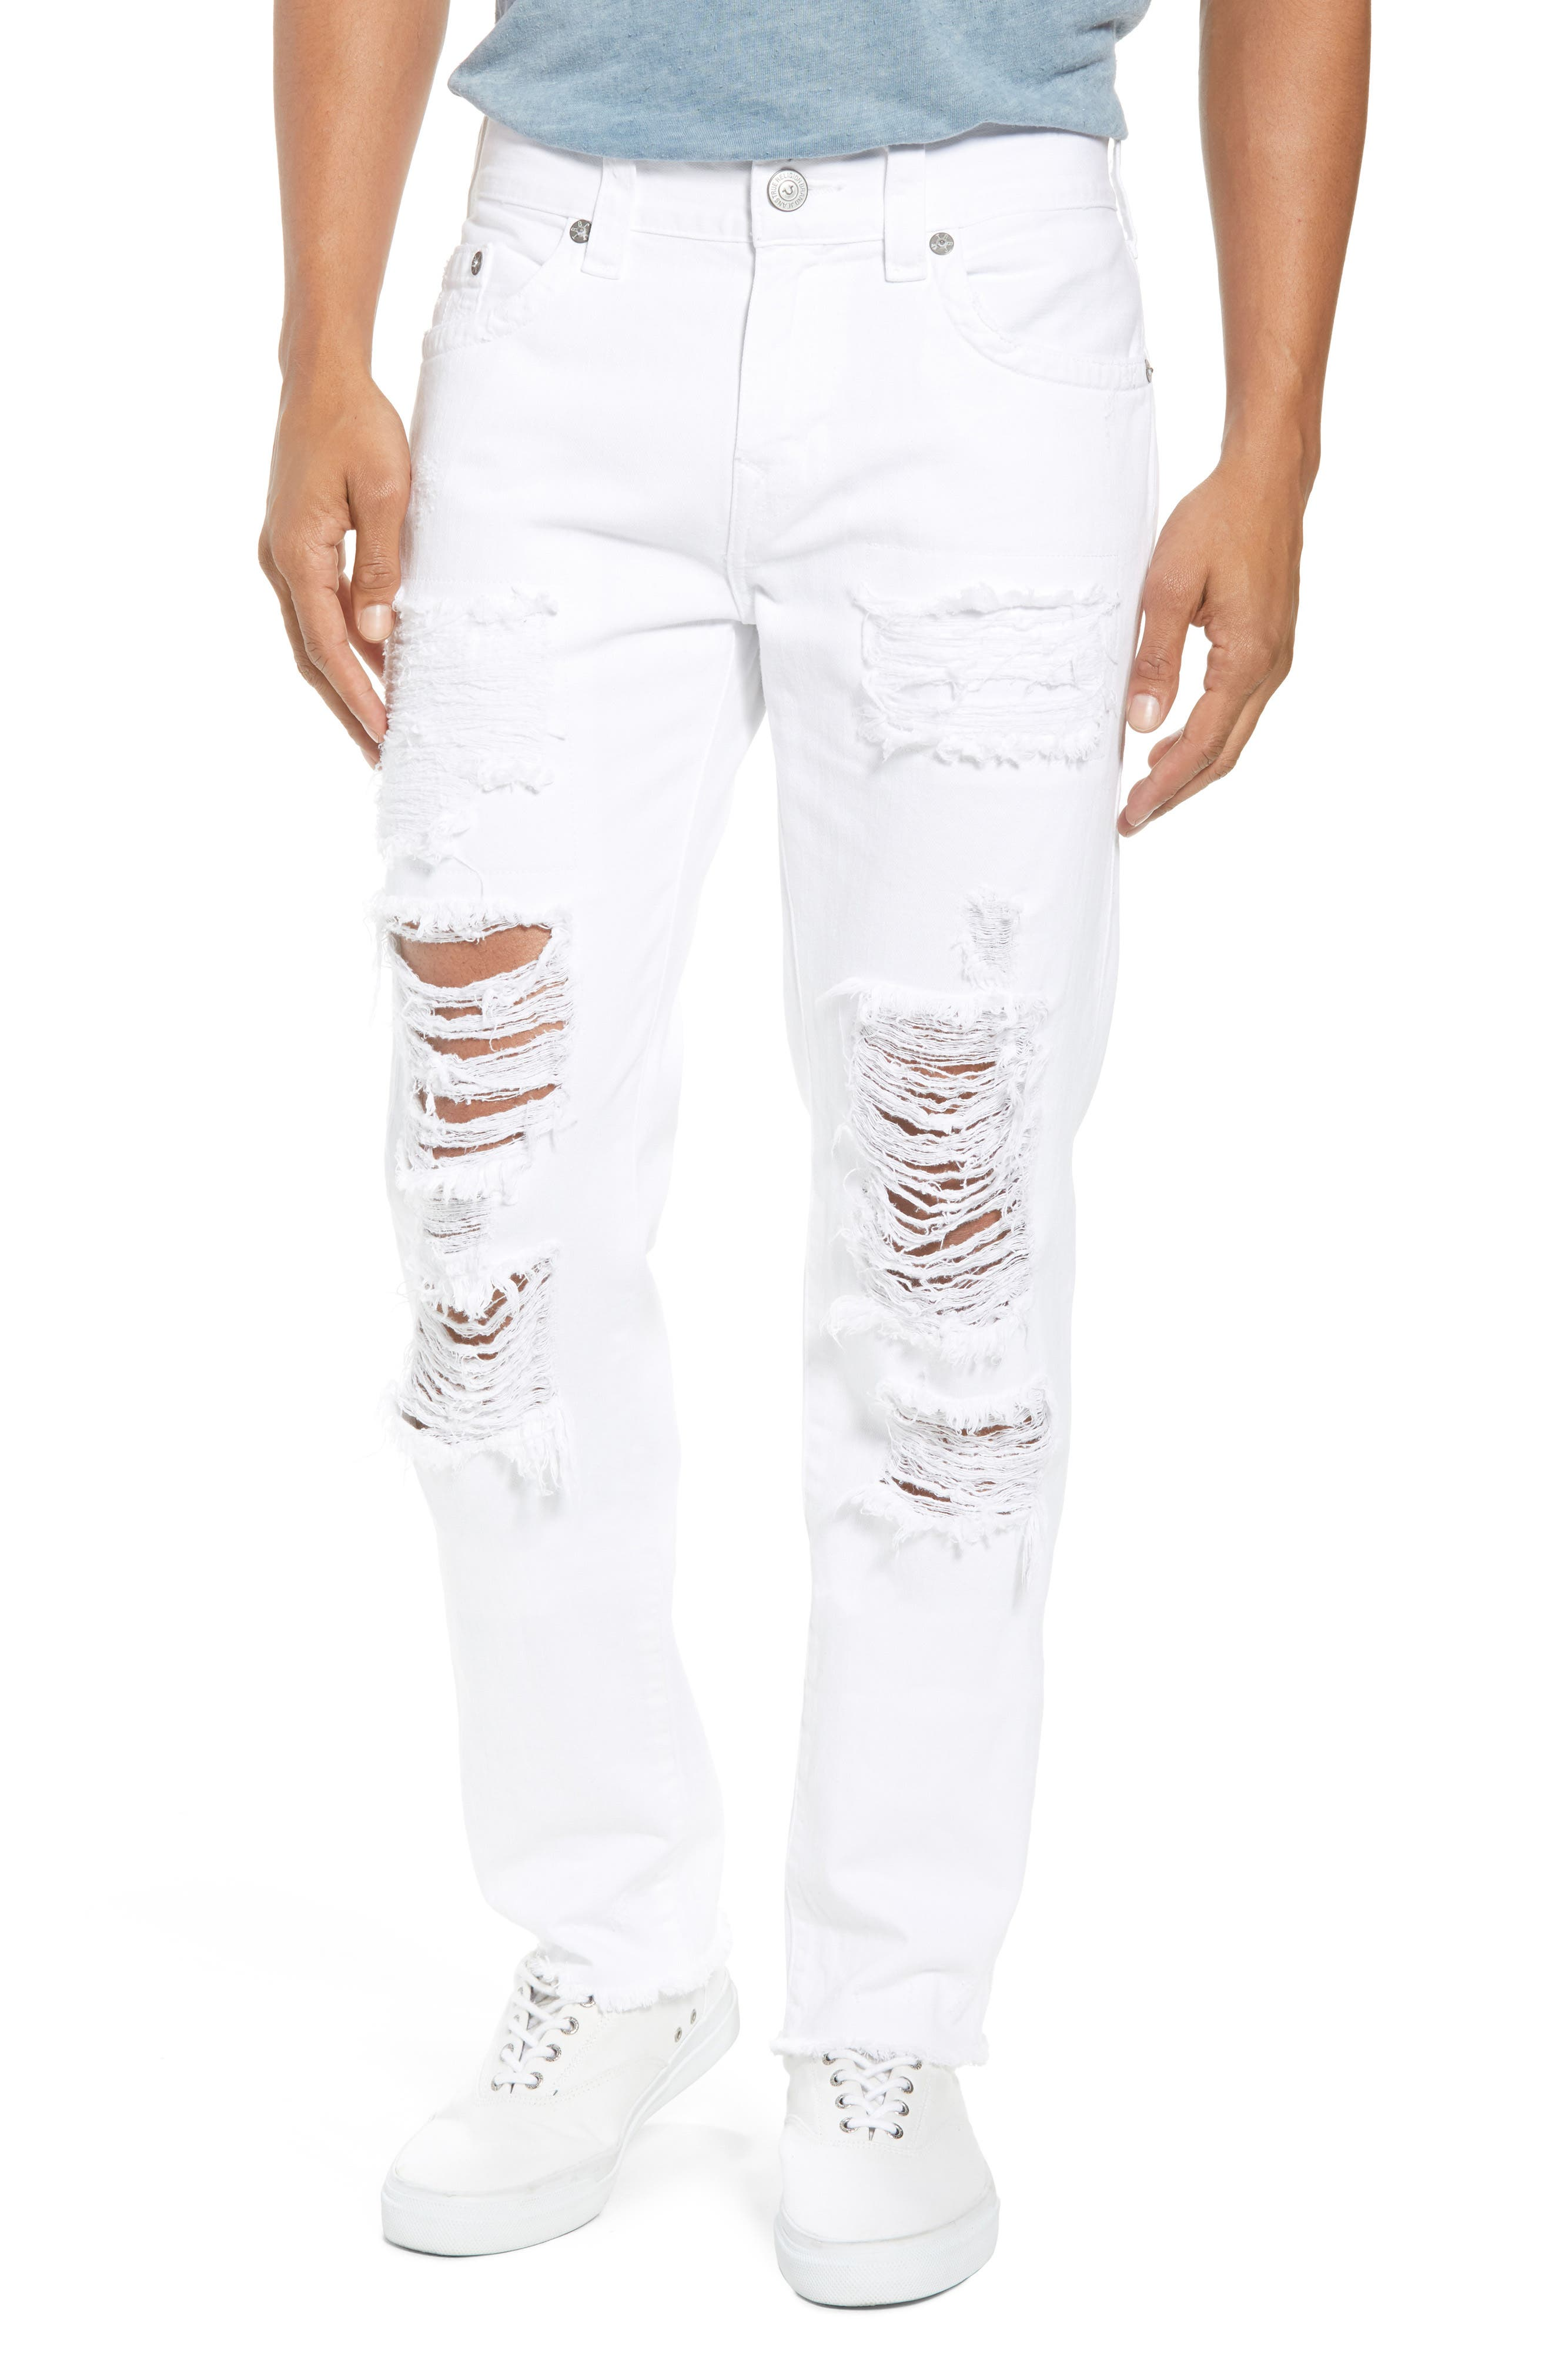 Rocco Skinny Fit jeans,                         Main,                         color, White Volcanic Ash